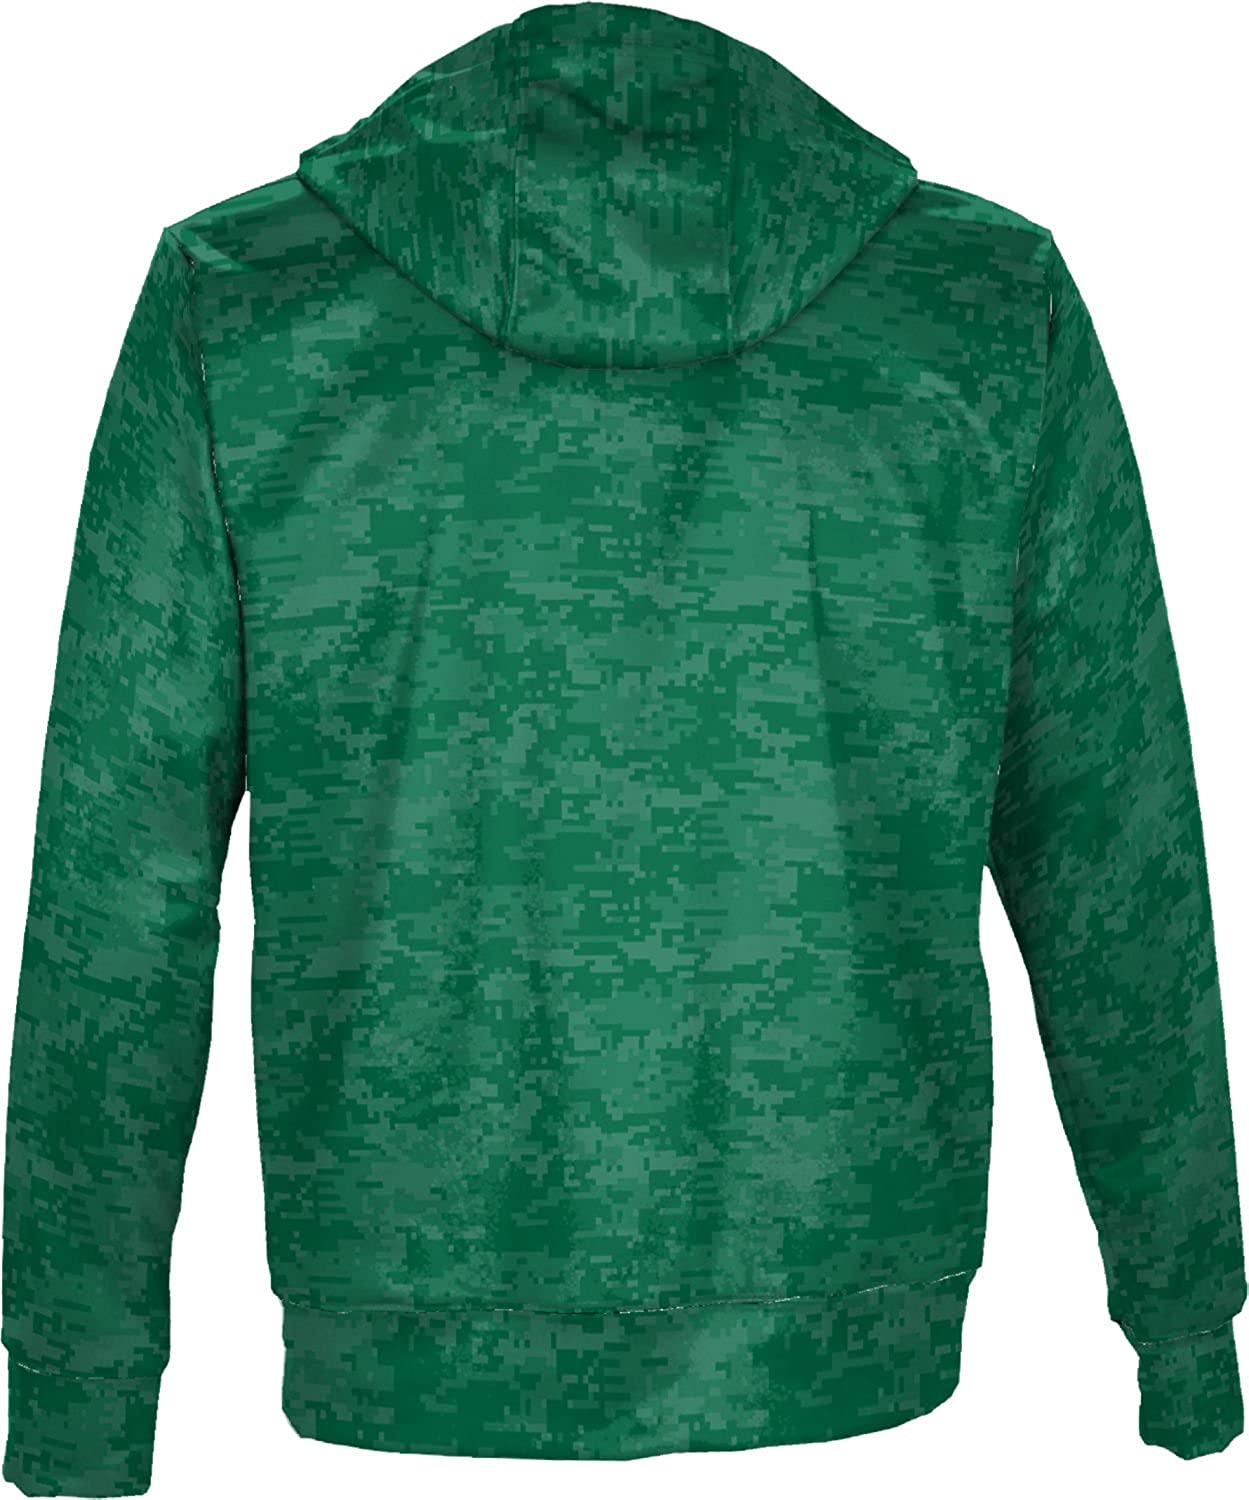 ProSphere Stetson University Boys Hoodie Sweatshirt Digital